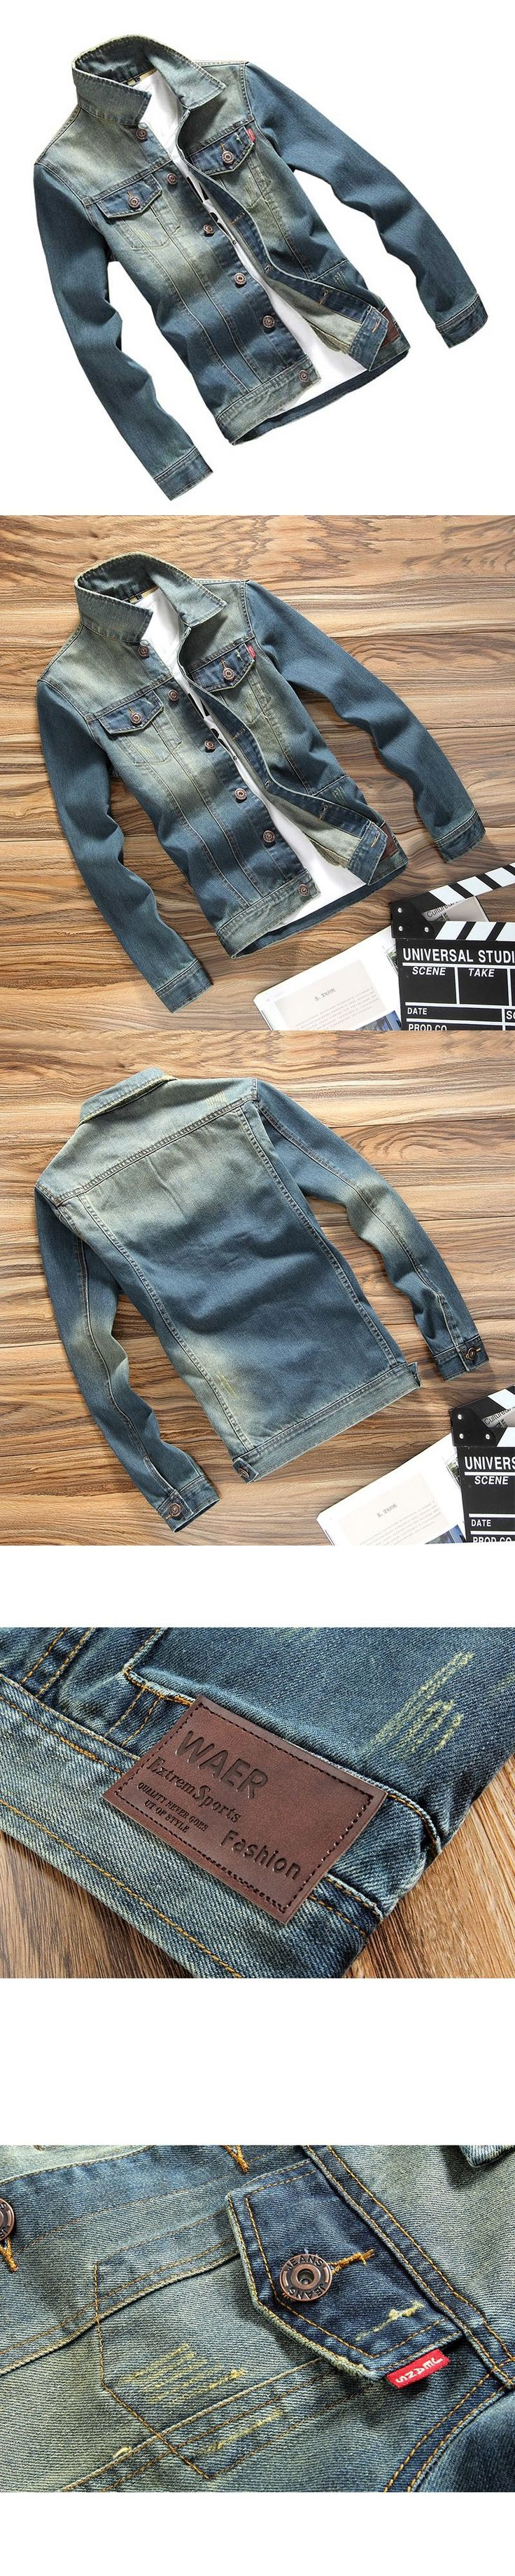 Men Slim Denim Jacket Retro Fashion Wholesale Autumn Chaqueta Hombre Men's Solid Jean Jacket Slim Fit Outwear Brand Clothing 3XL #mensjeansfashion